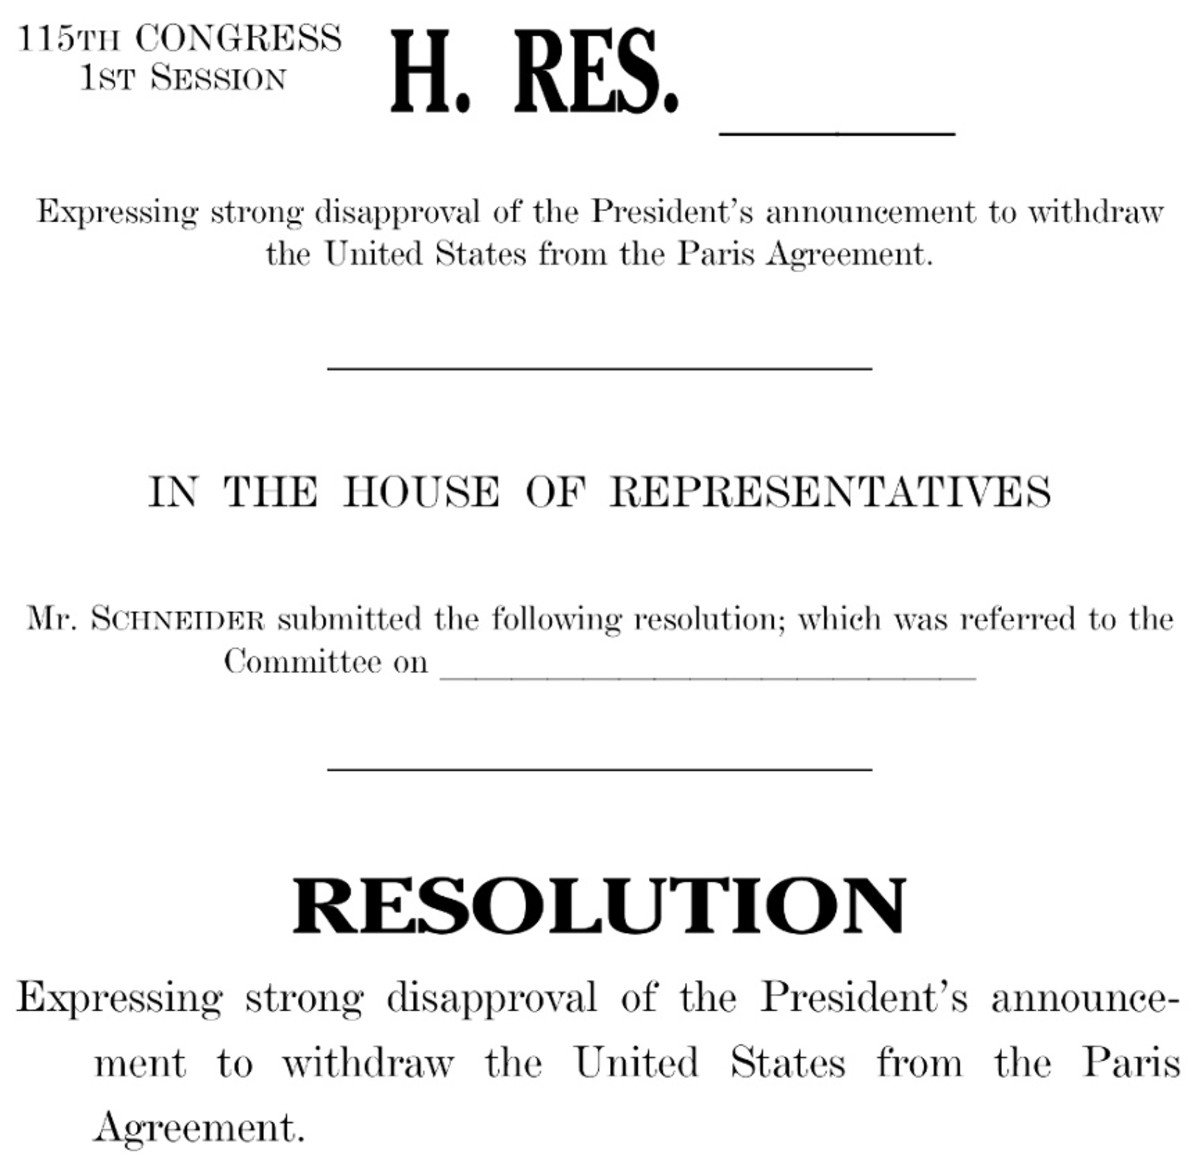 Image of house bill objecting to USA withdrawal from Paris Agreement.